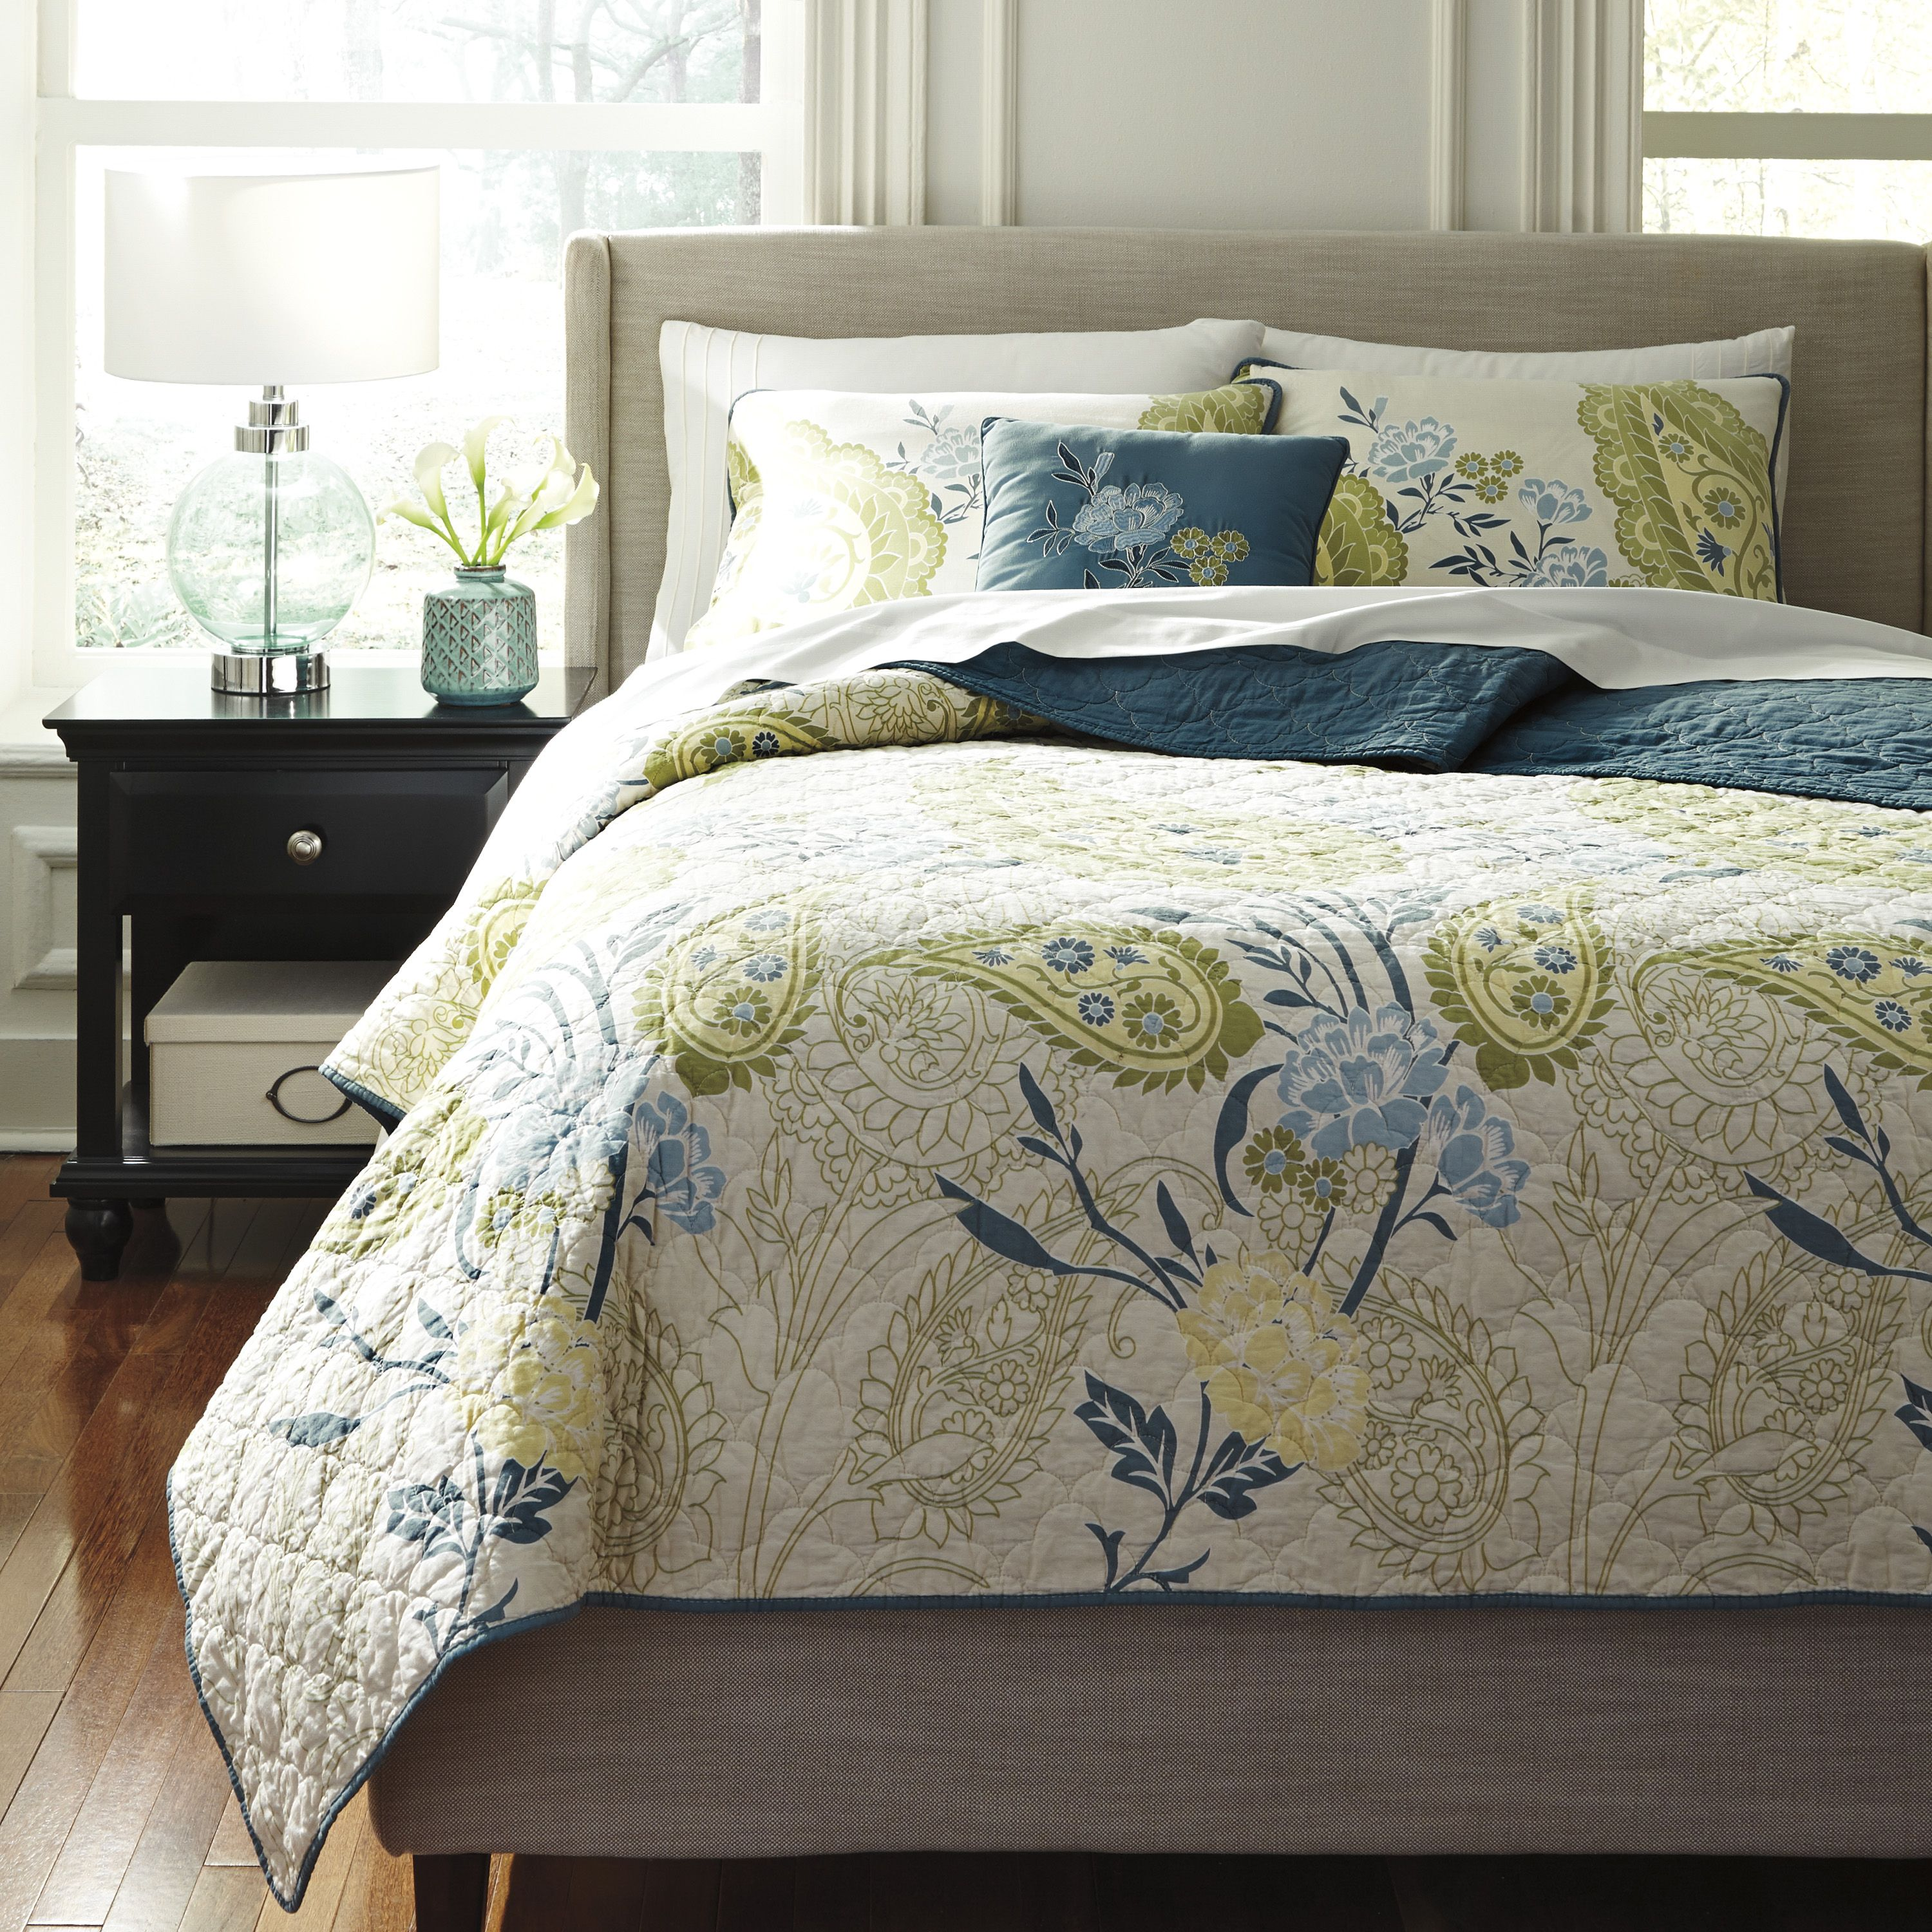 I Love This Blue And Green Quilt! Very Neutral And Great